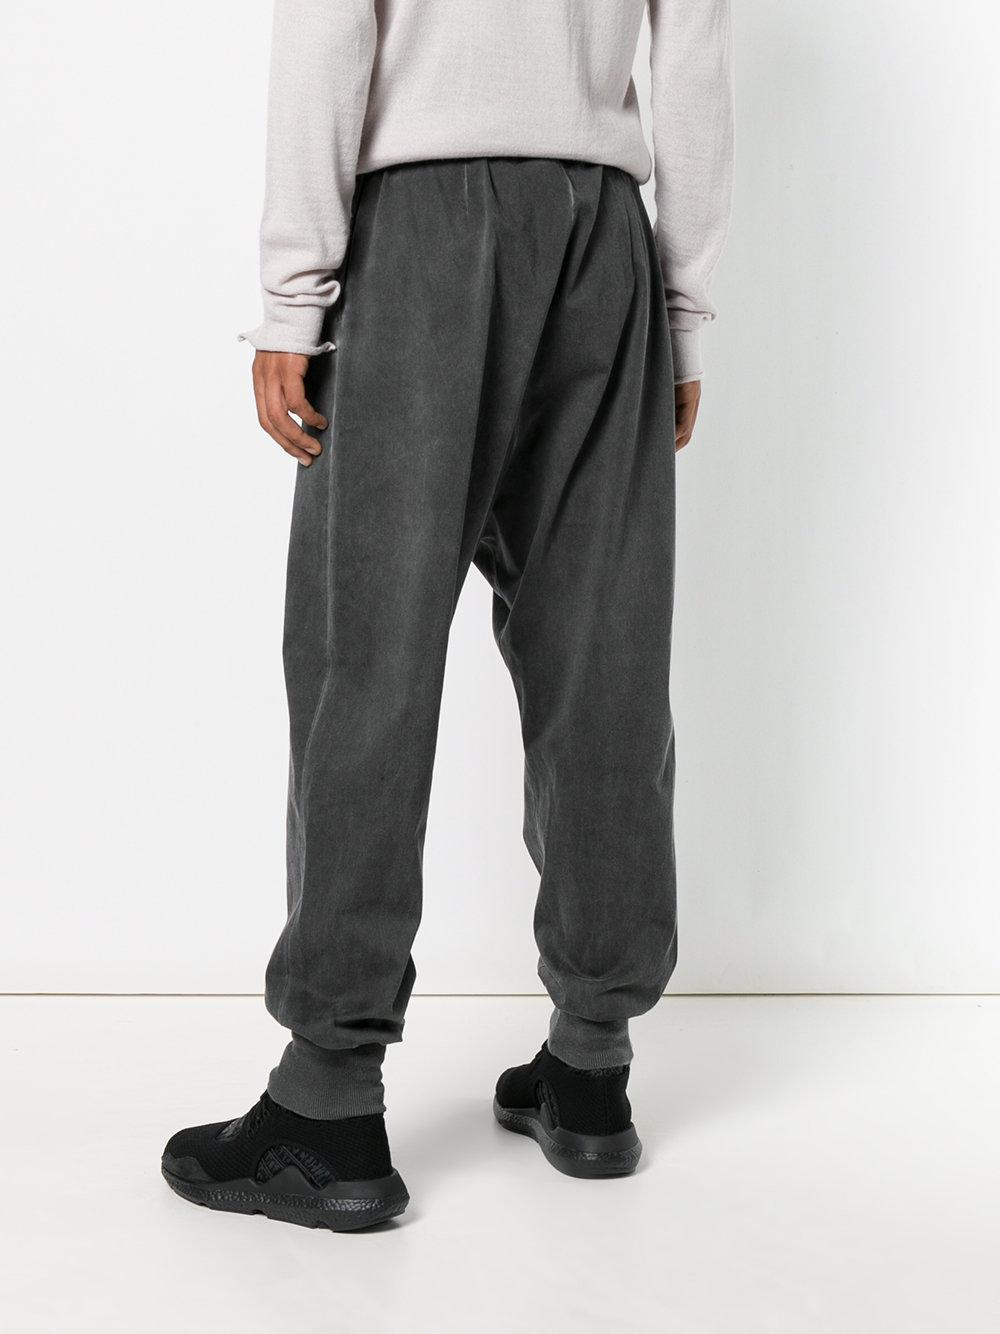 overdyed drop crotch joggers - Grey Lost And Found Rooms Outlet Perfect Cheap Store Eastbay Cheap Price Cheap Sneakernews Finishline Cheap Online w7fqi